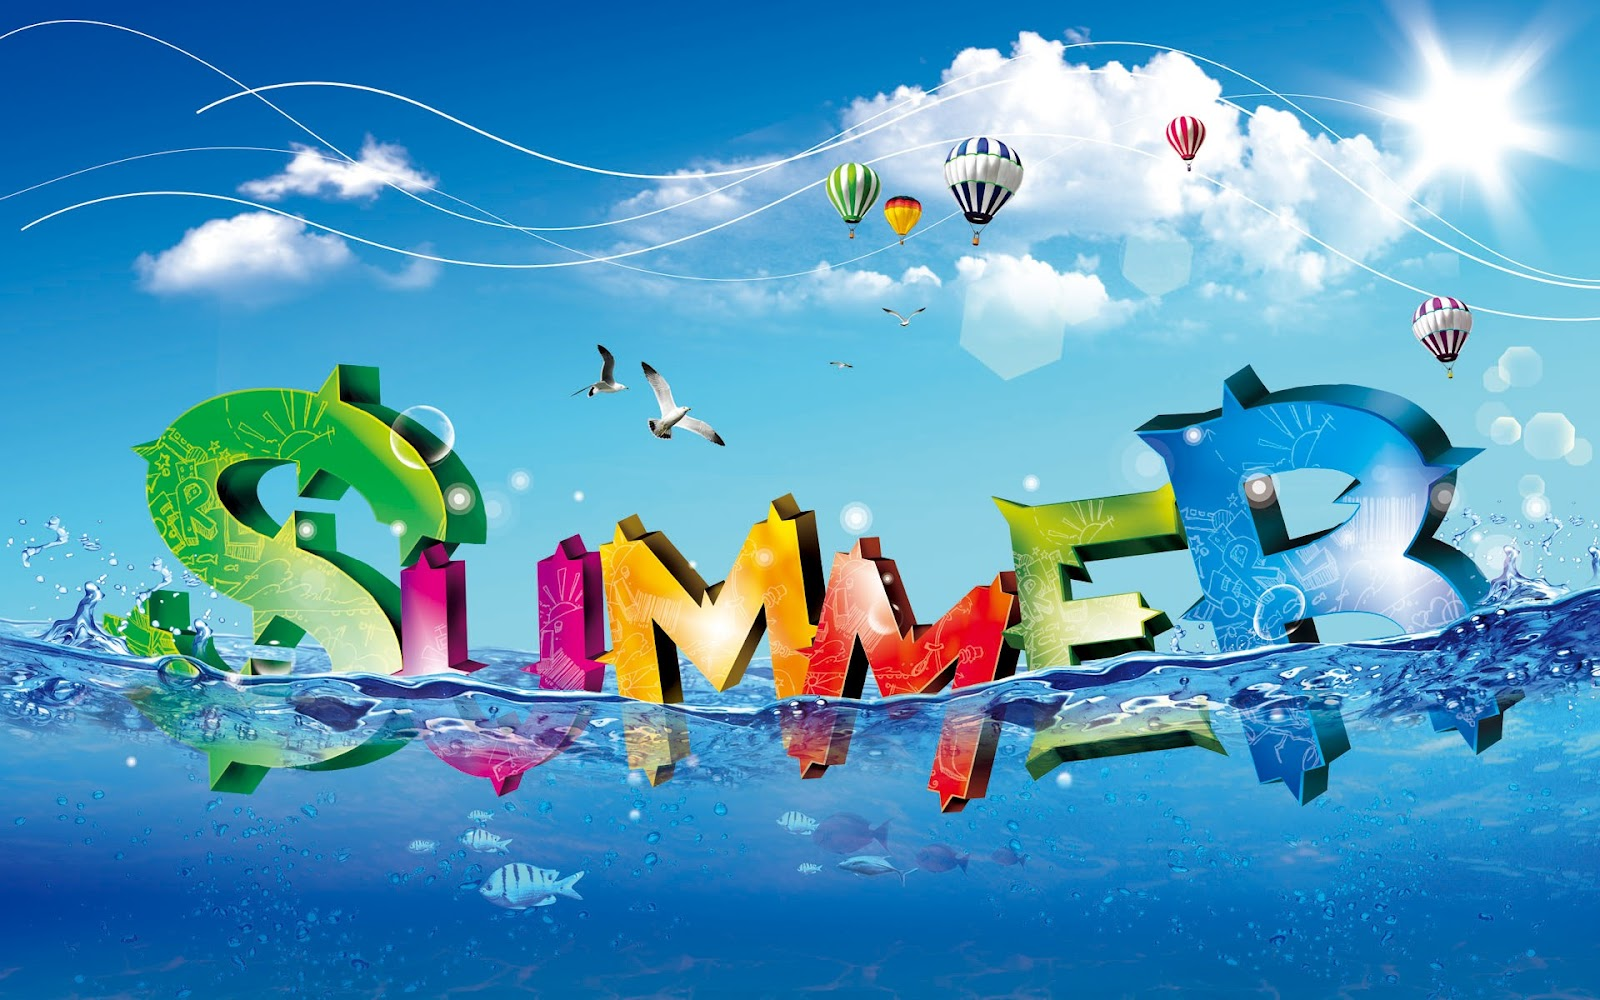 summer wallpapers for desktop background - wallpapersafari